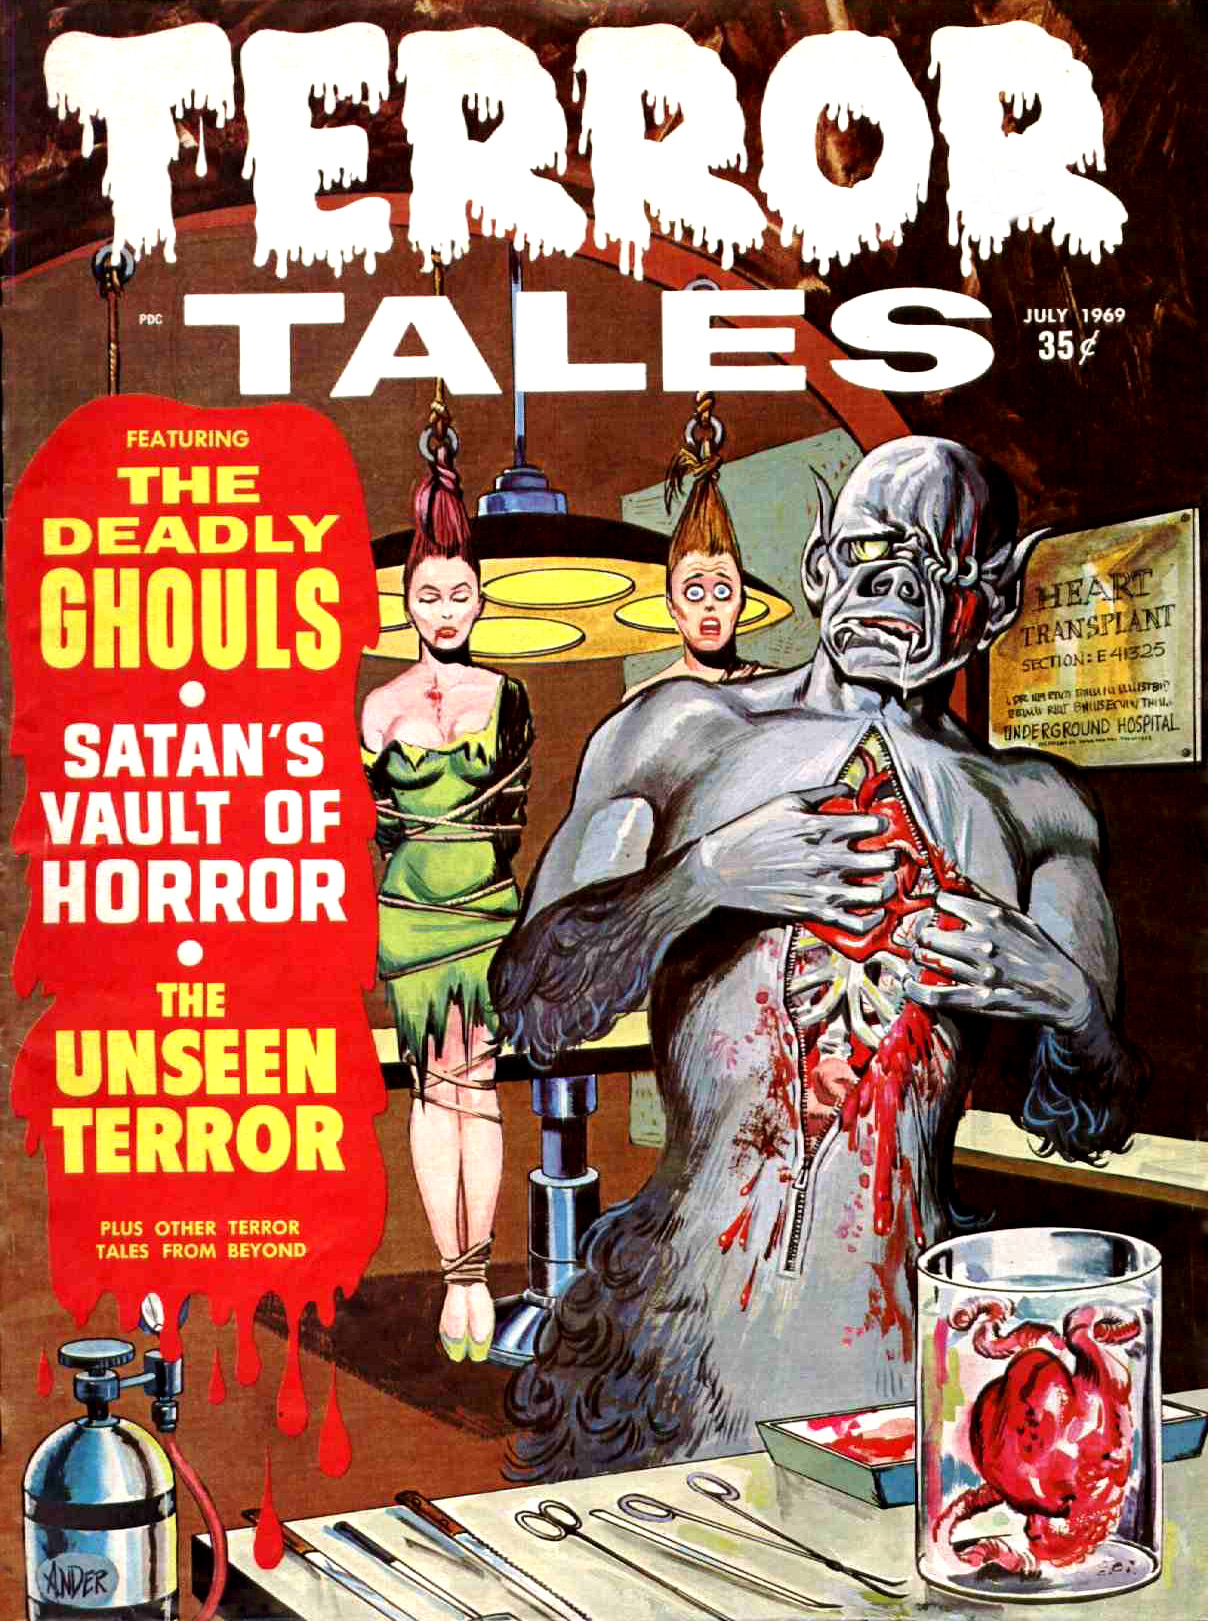 Terror Tales Vol. 01 #9 (Eerie Publications, 1969)